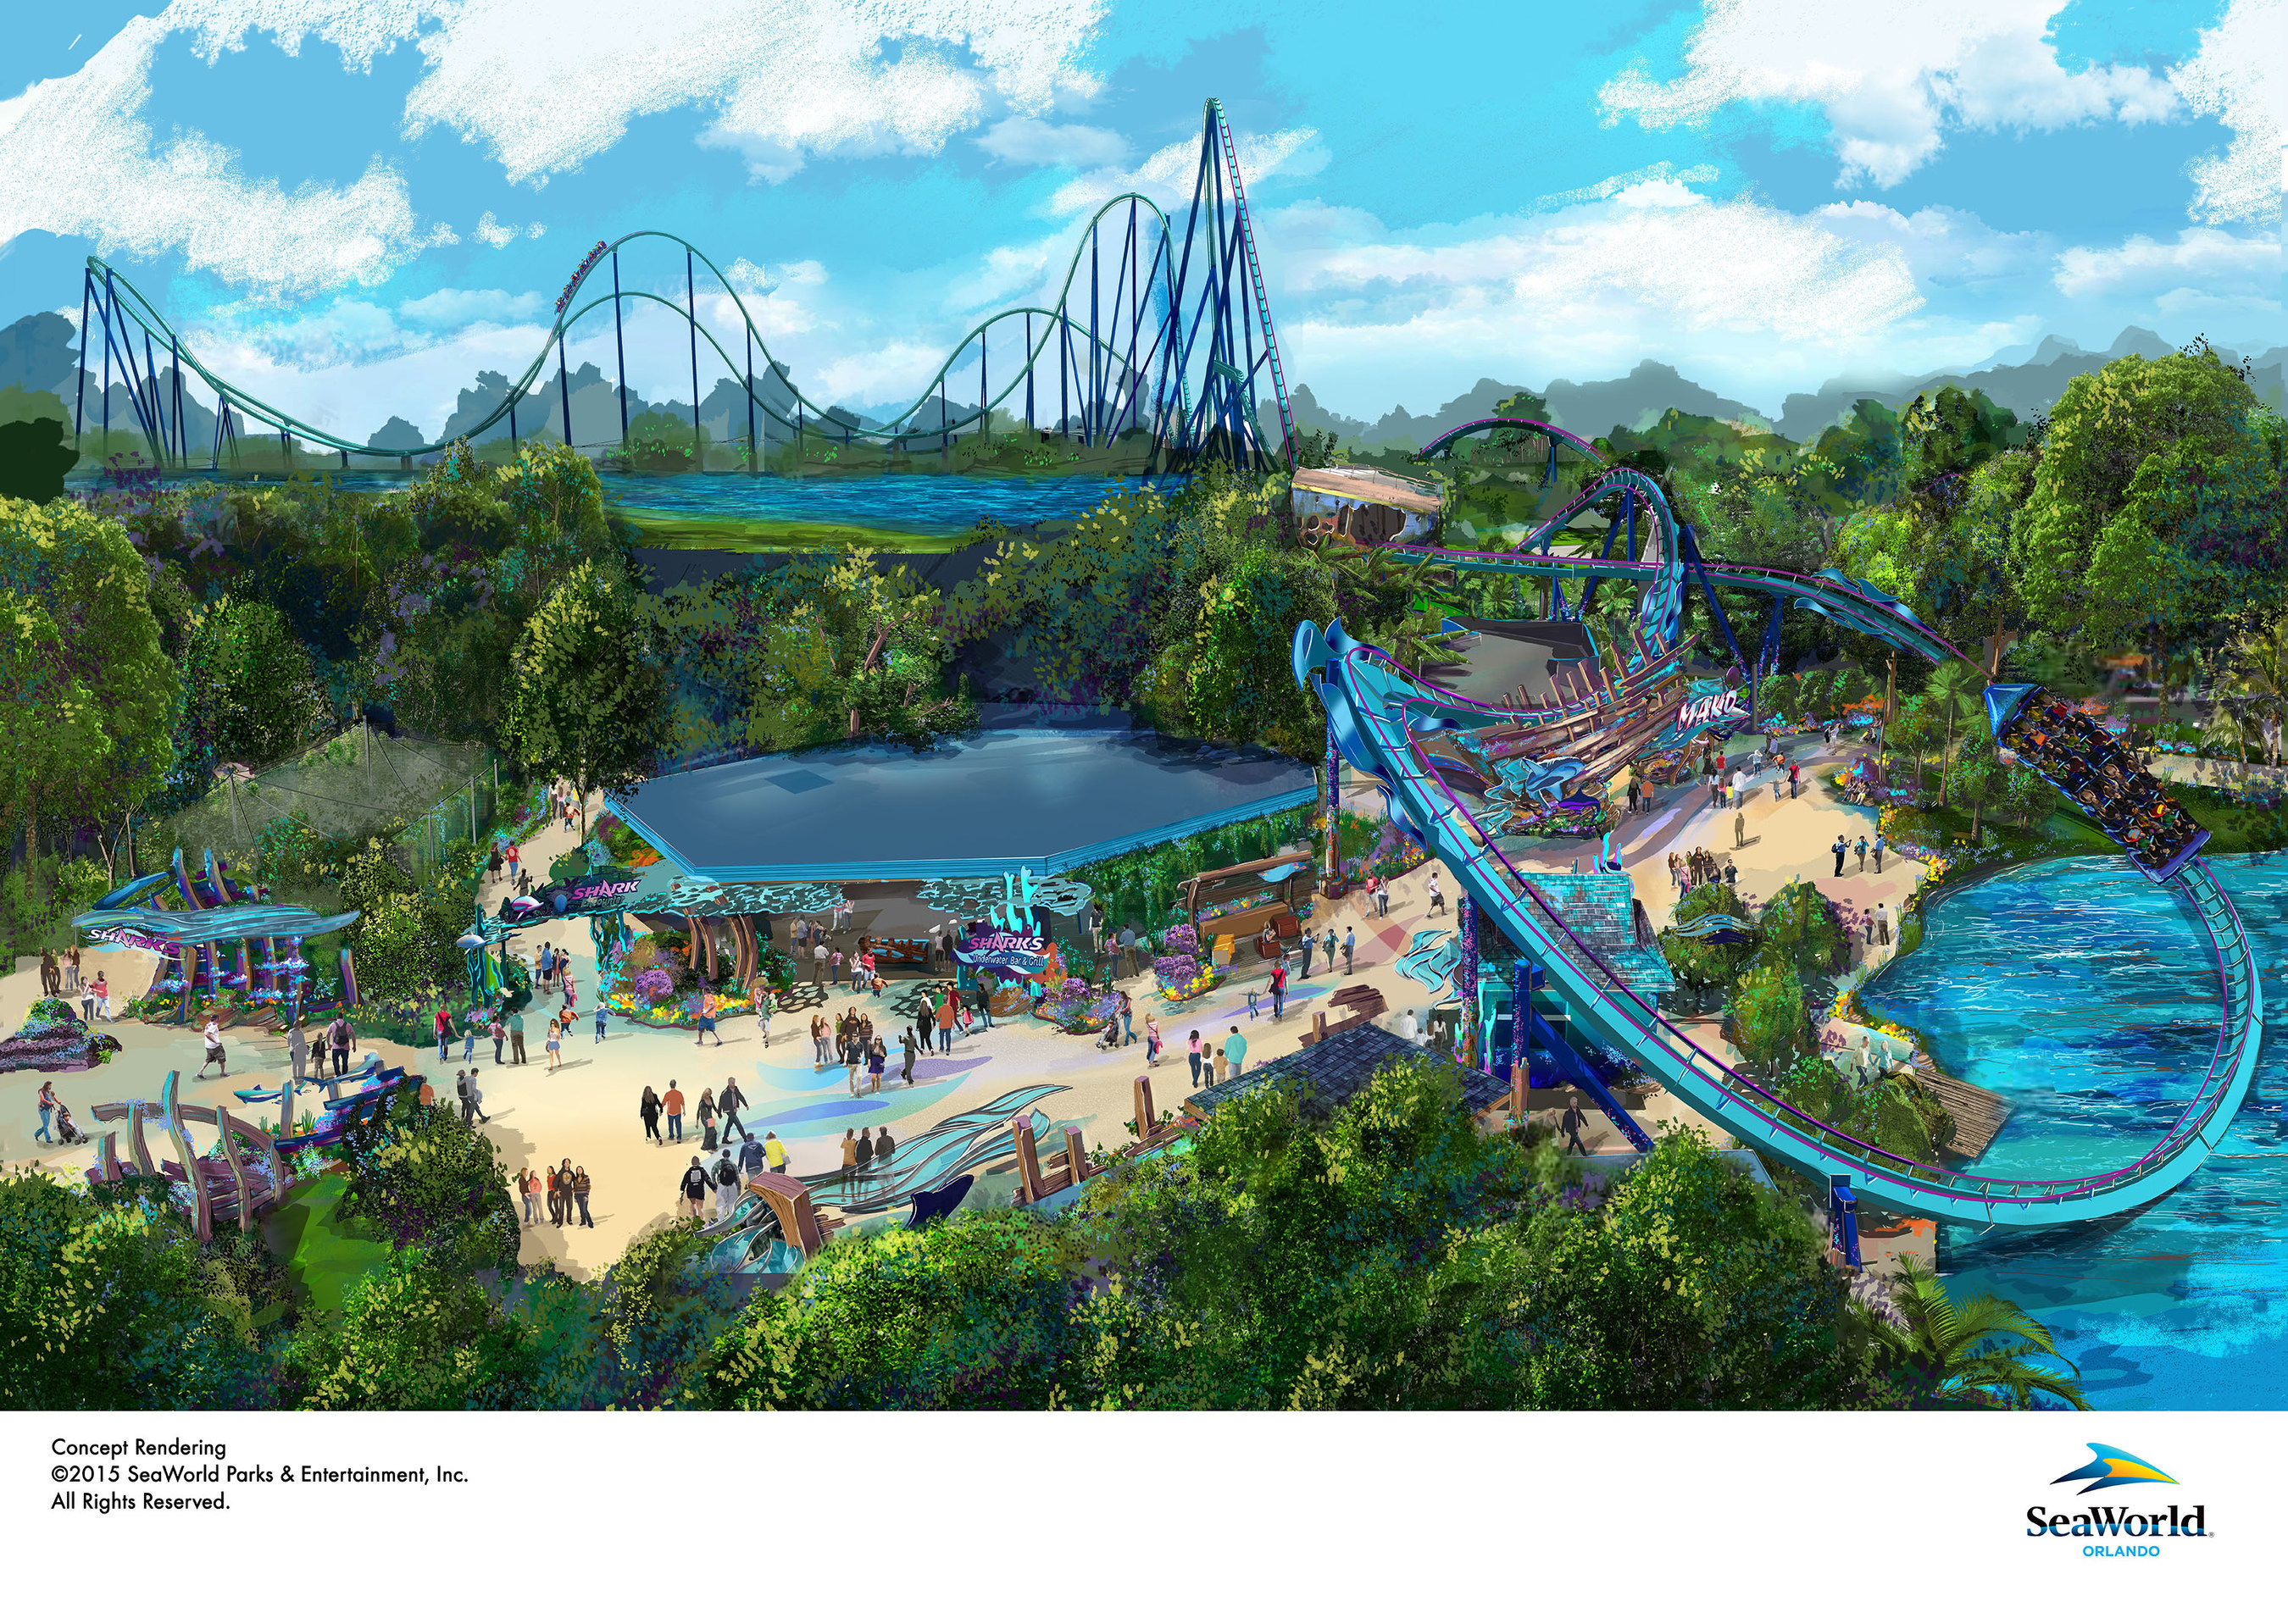 SeaWorld Entertainment, Inc. Announces Big Thrills Coming in 2016 to Two Florida Theme Parks